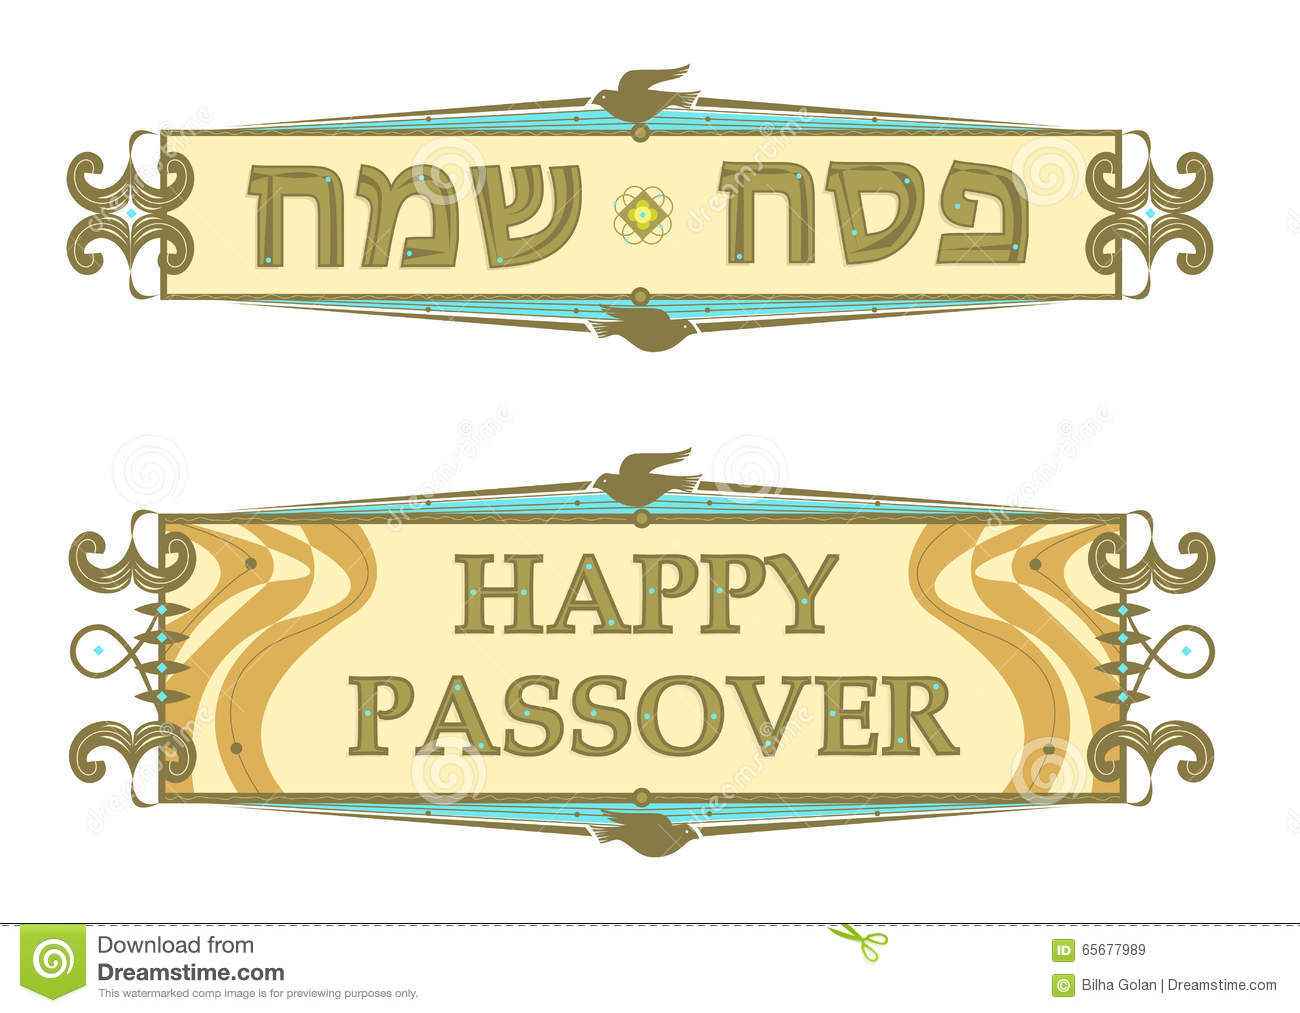 Passover Banners Stock Vector Illustration Of Decoration 65677989